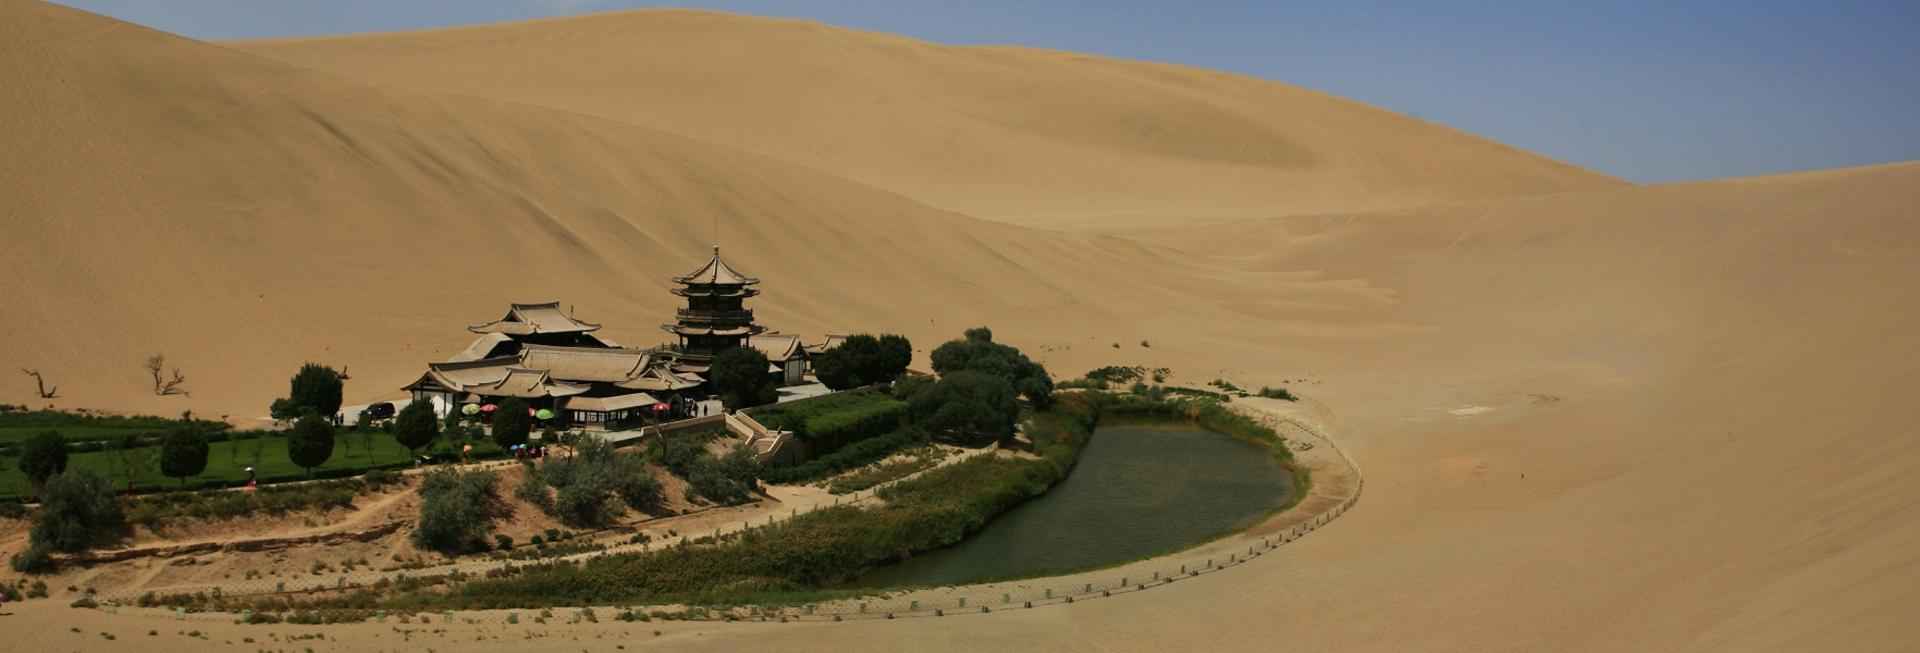 Crescent Lake, Dunhuang, Silk Road, China